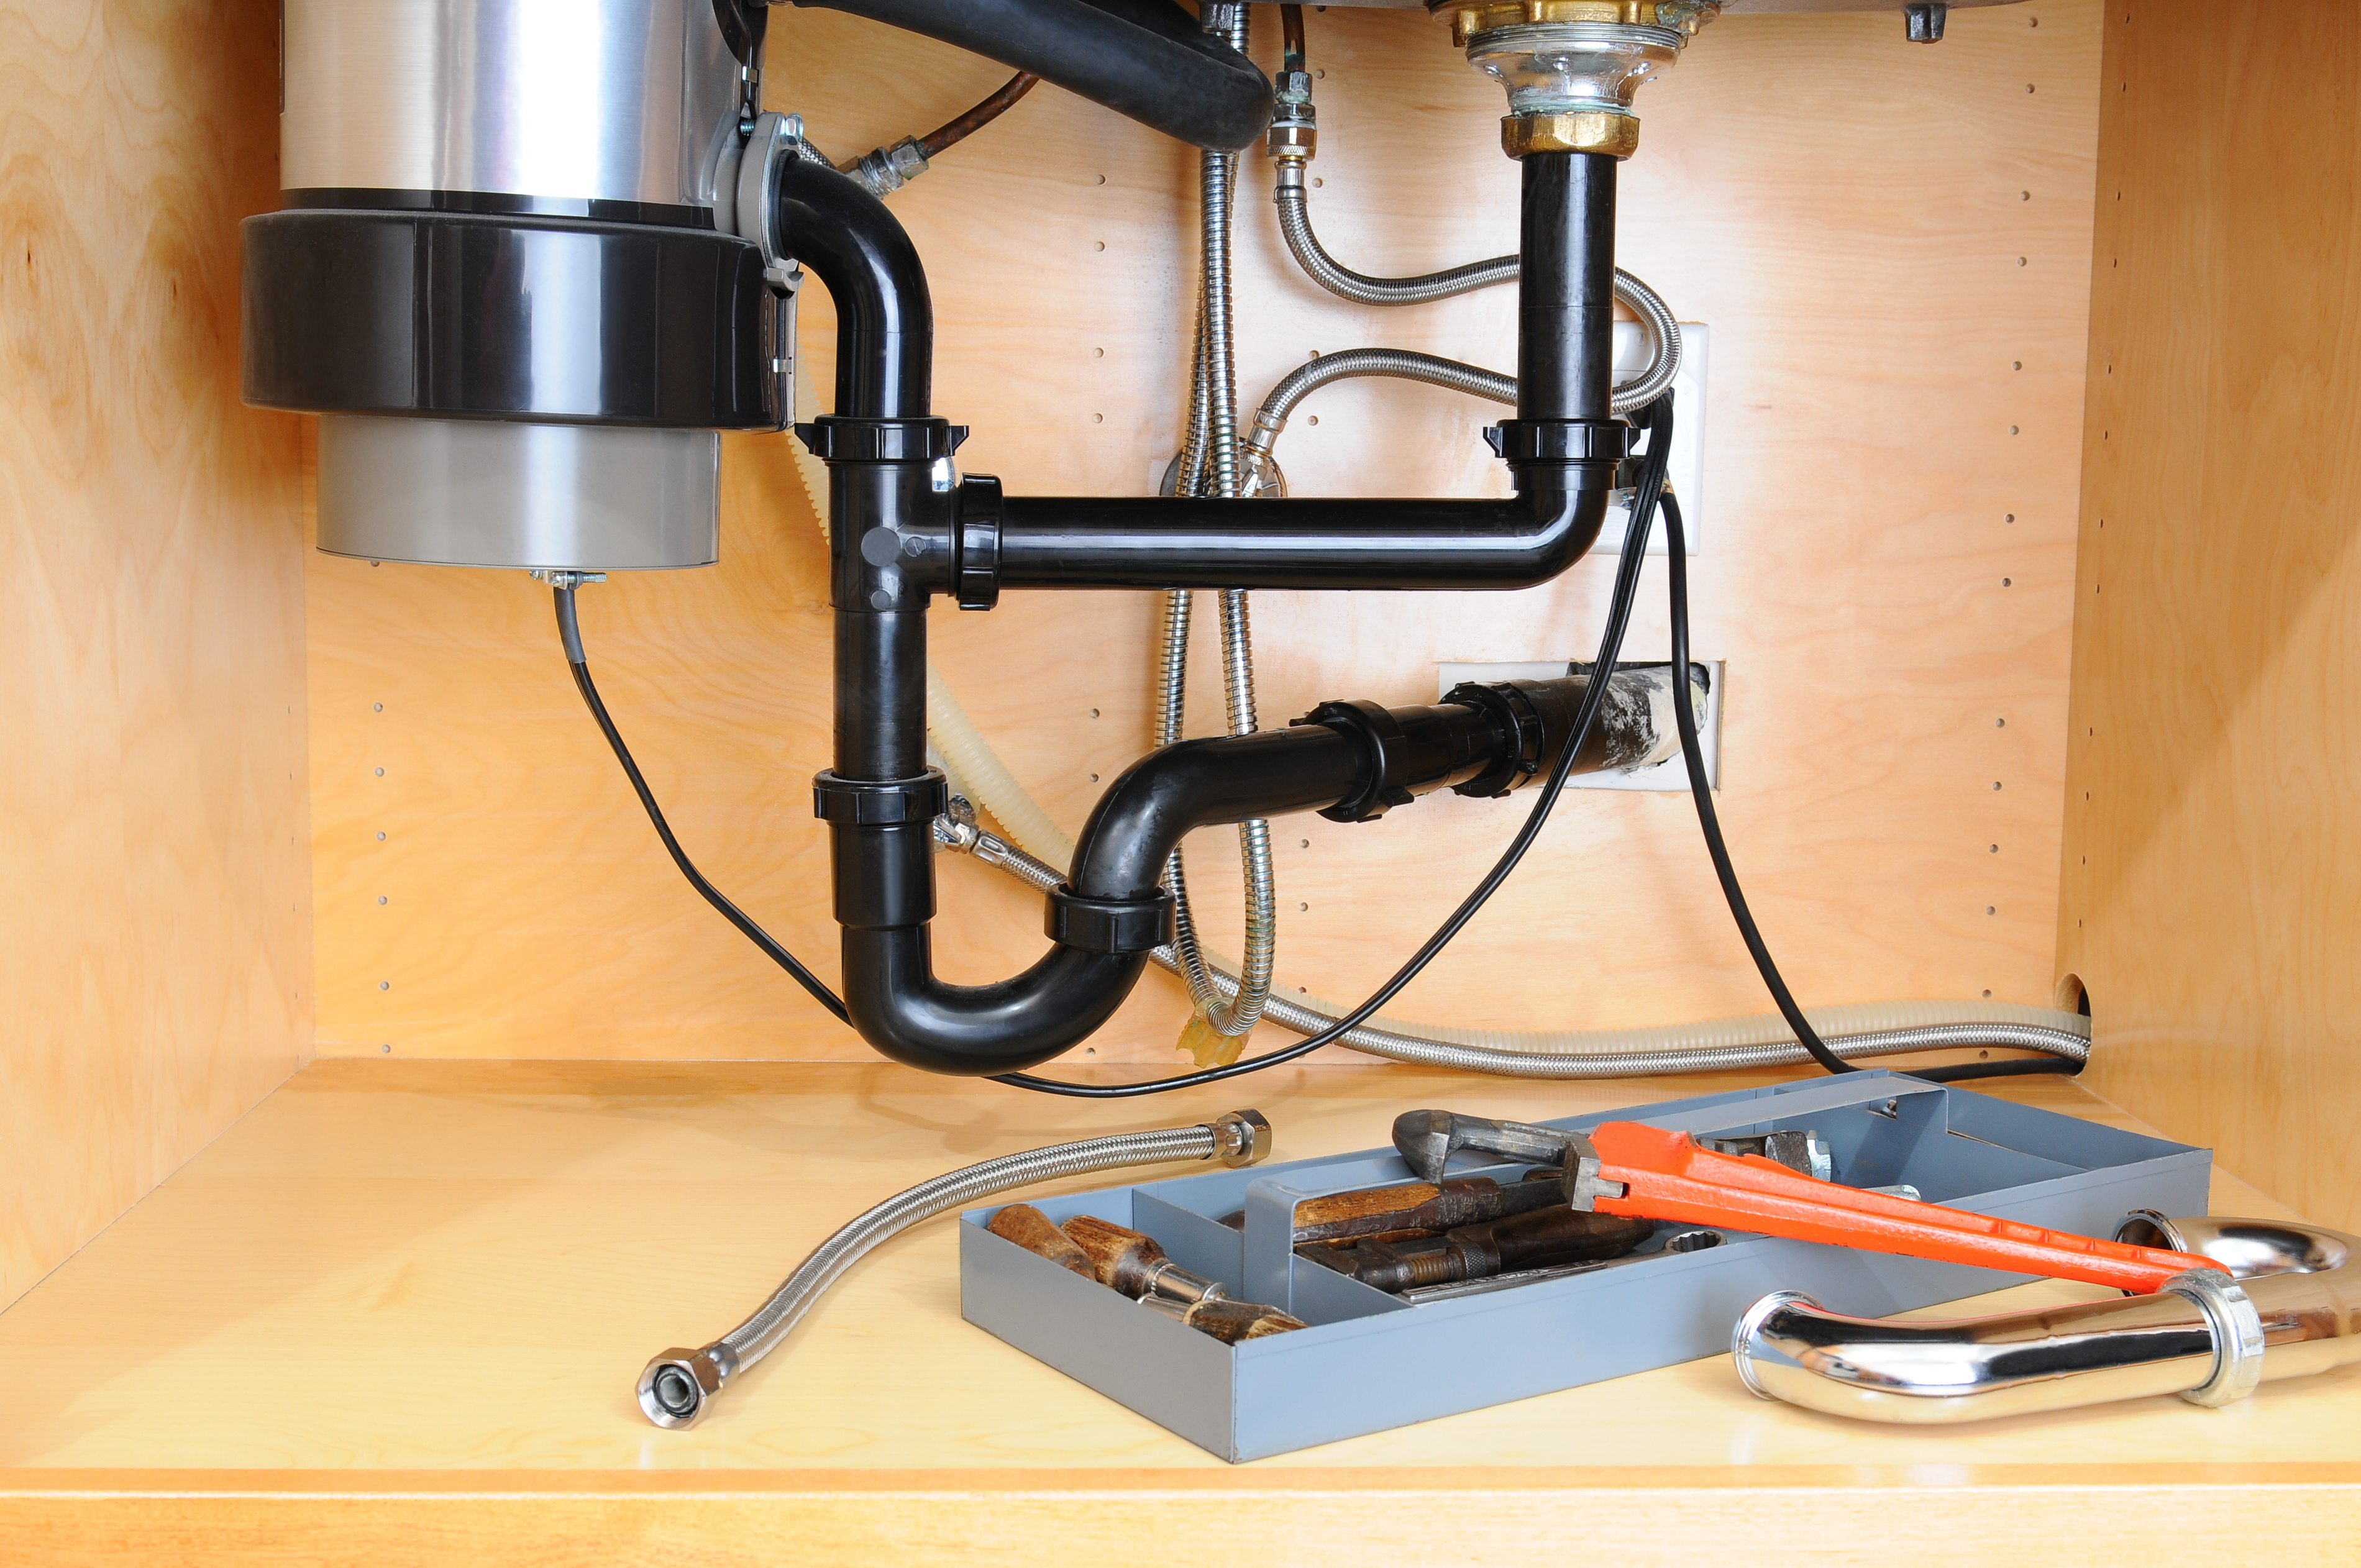 Detail of the plumbing system under a modern kitchen sink